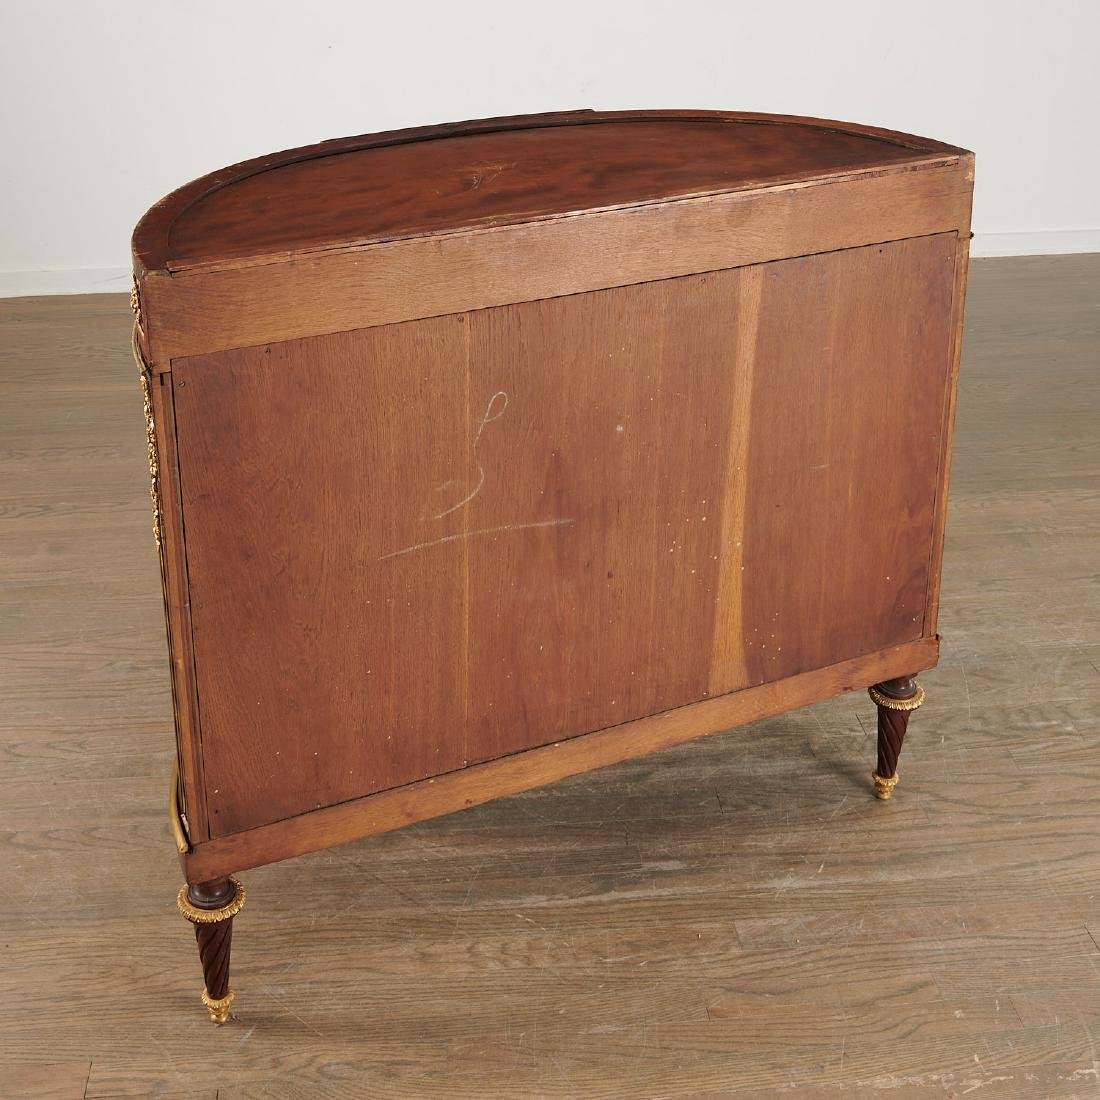 Louis XVI style demi-lune commode after Linke - 8